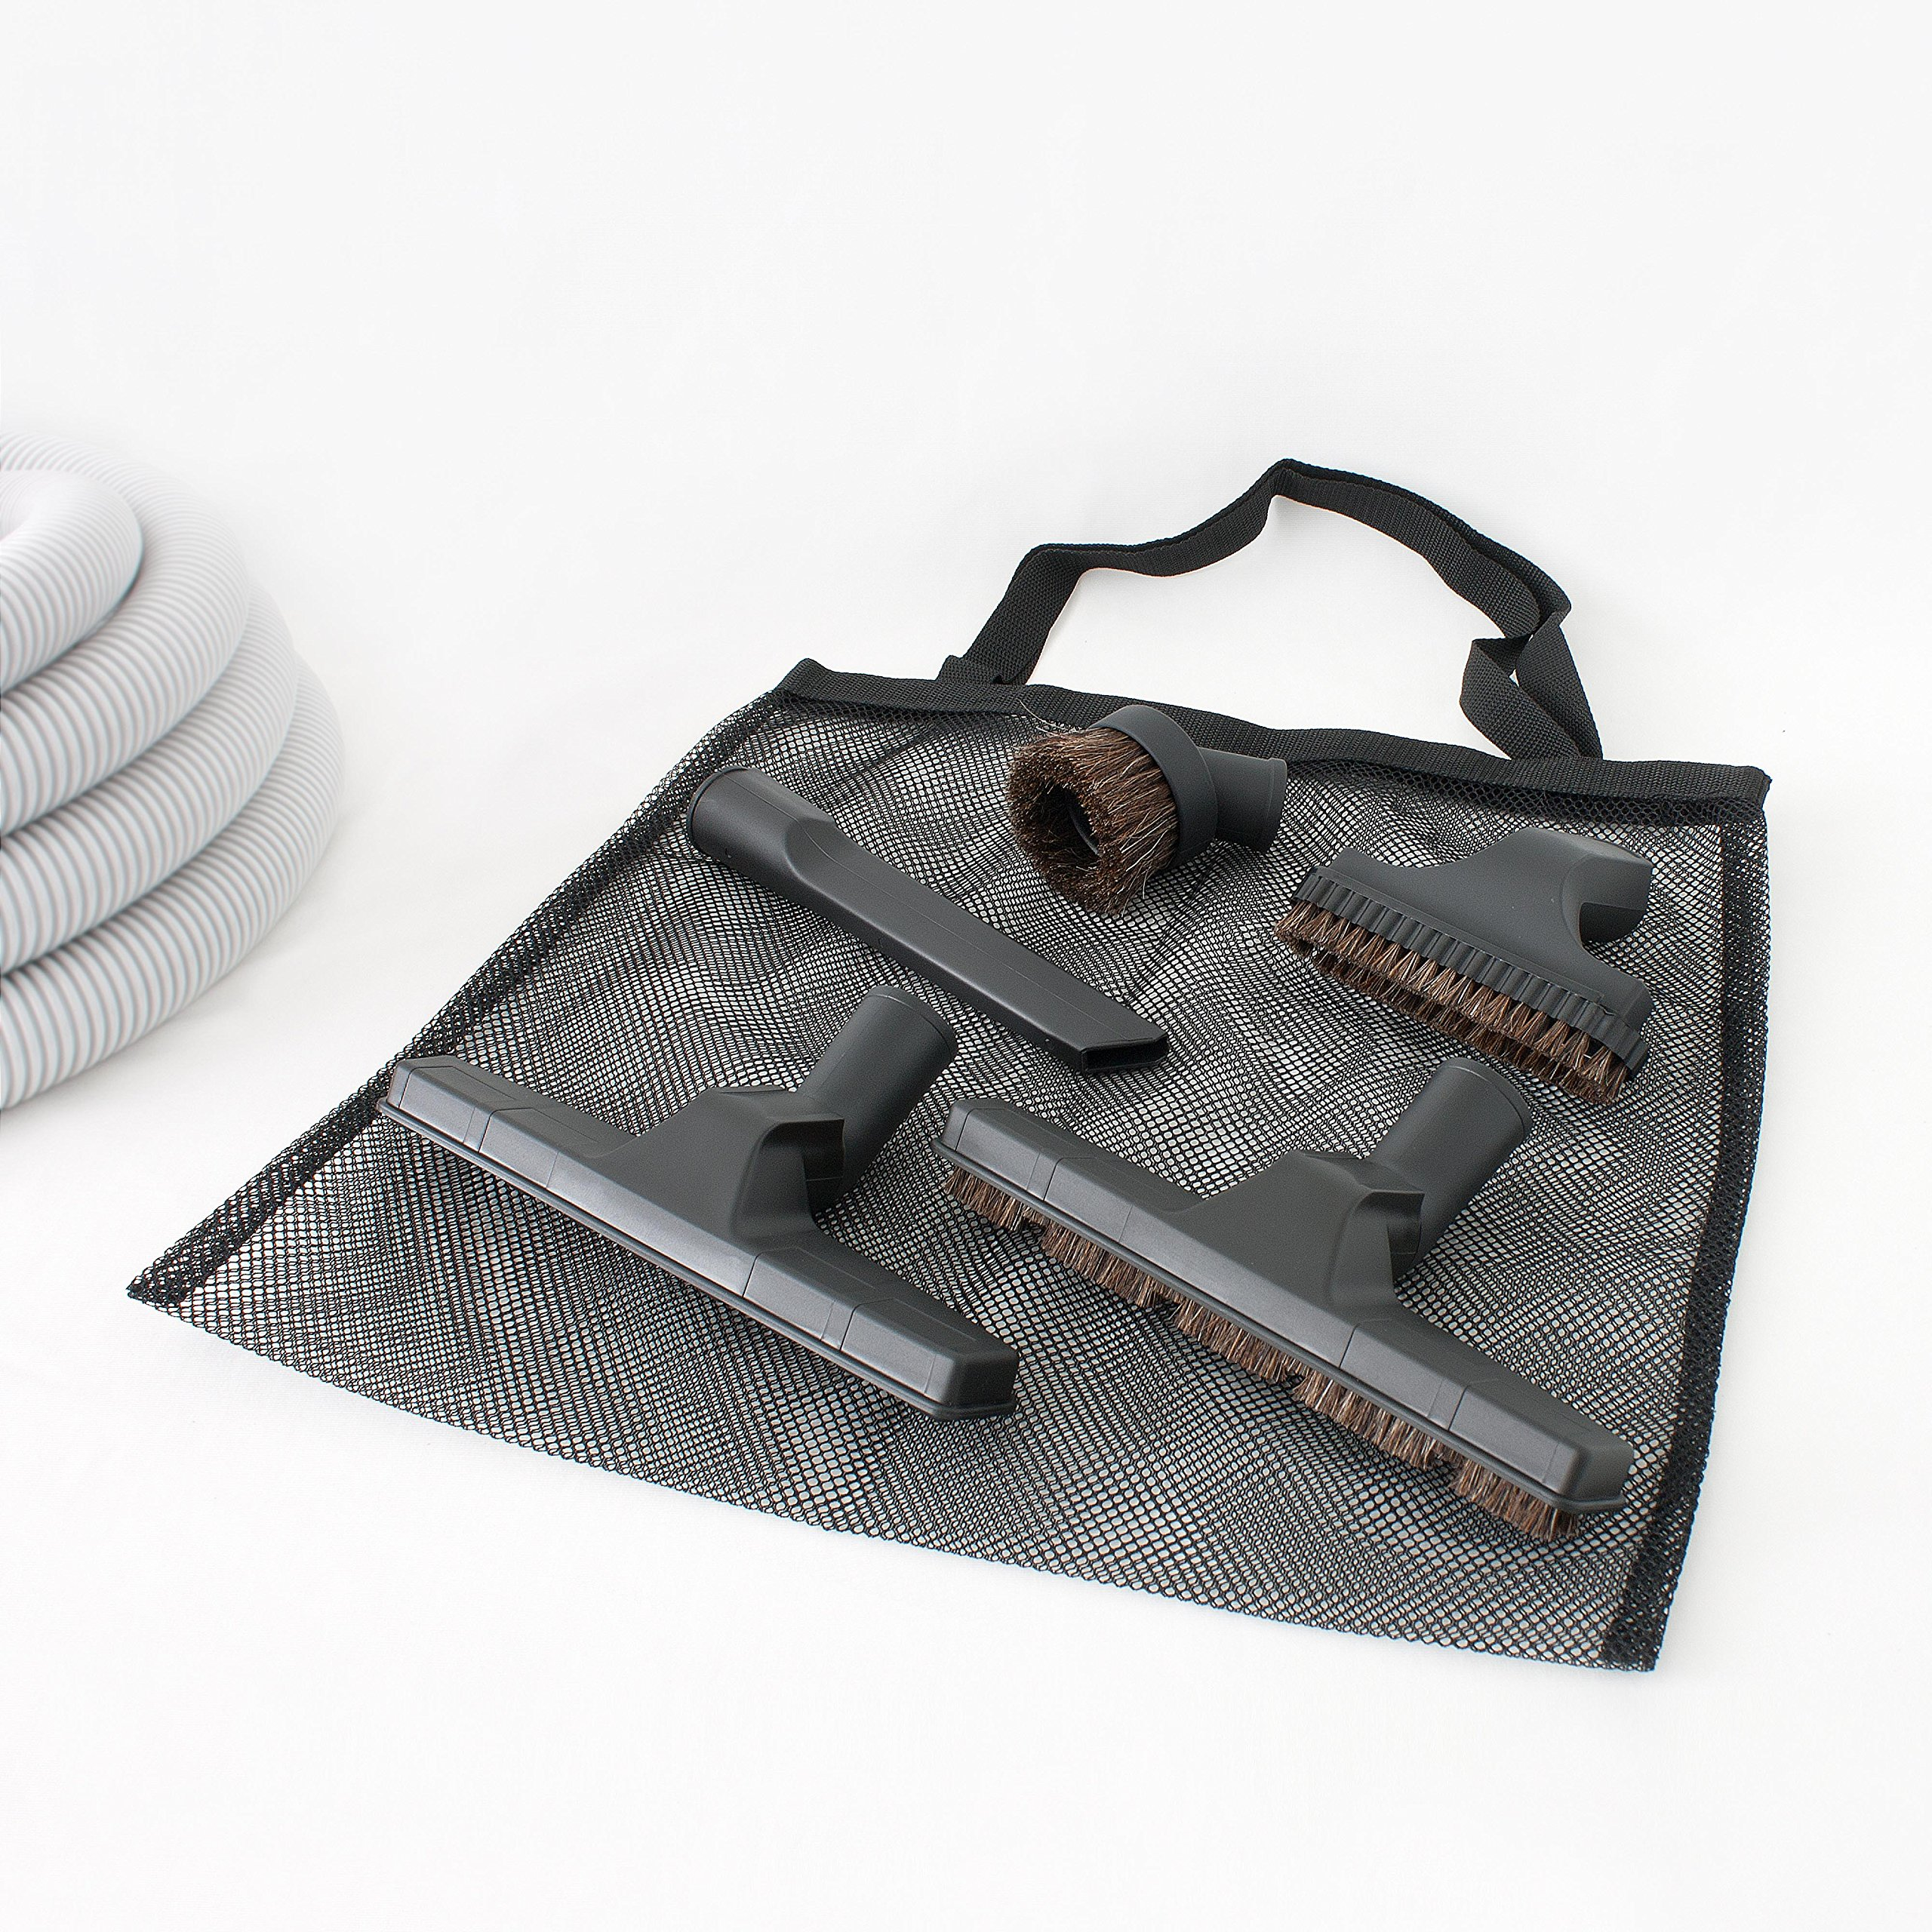 Central Vacuum Deluxe Hardwood, Bare floor and Carpet Kit with 30ft Hose and Accessories by Plastiflex (Image #4)